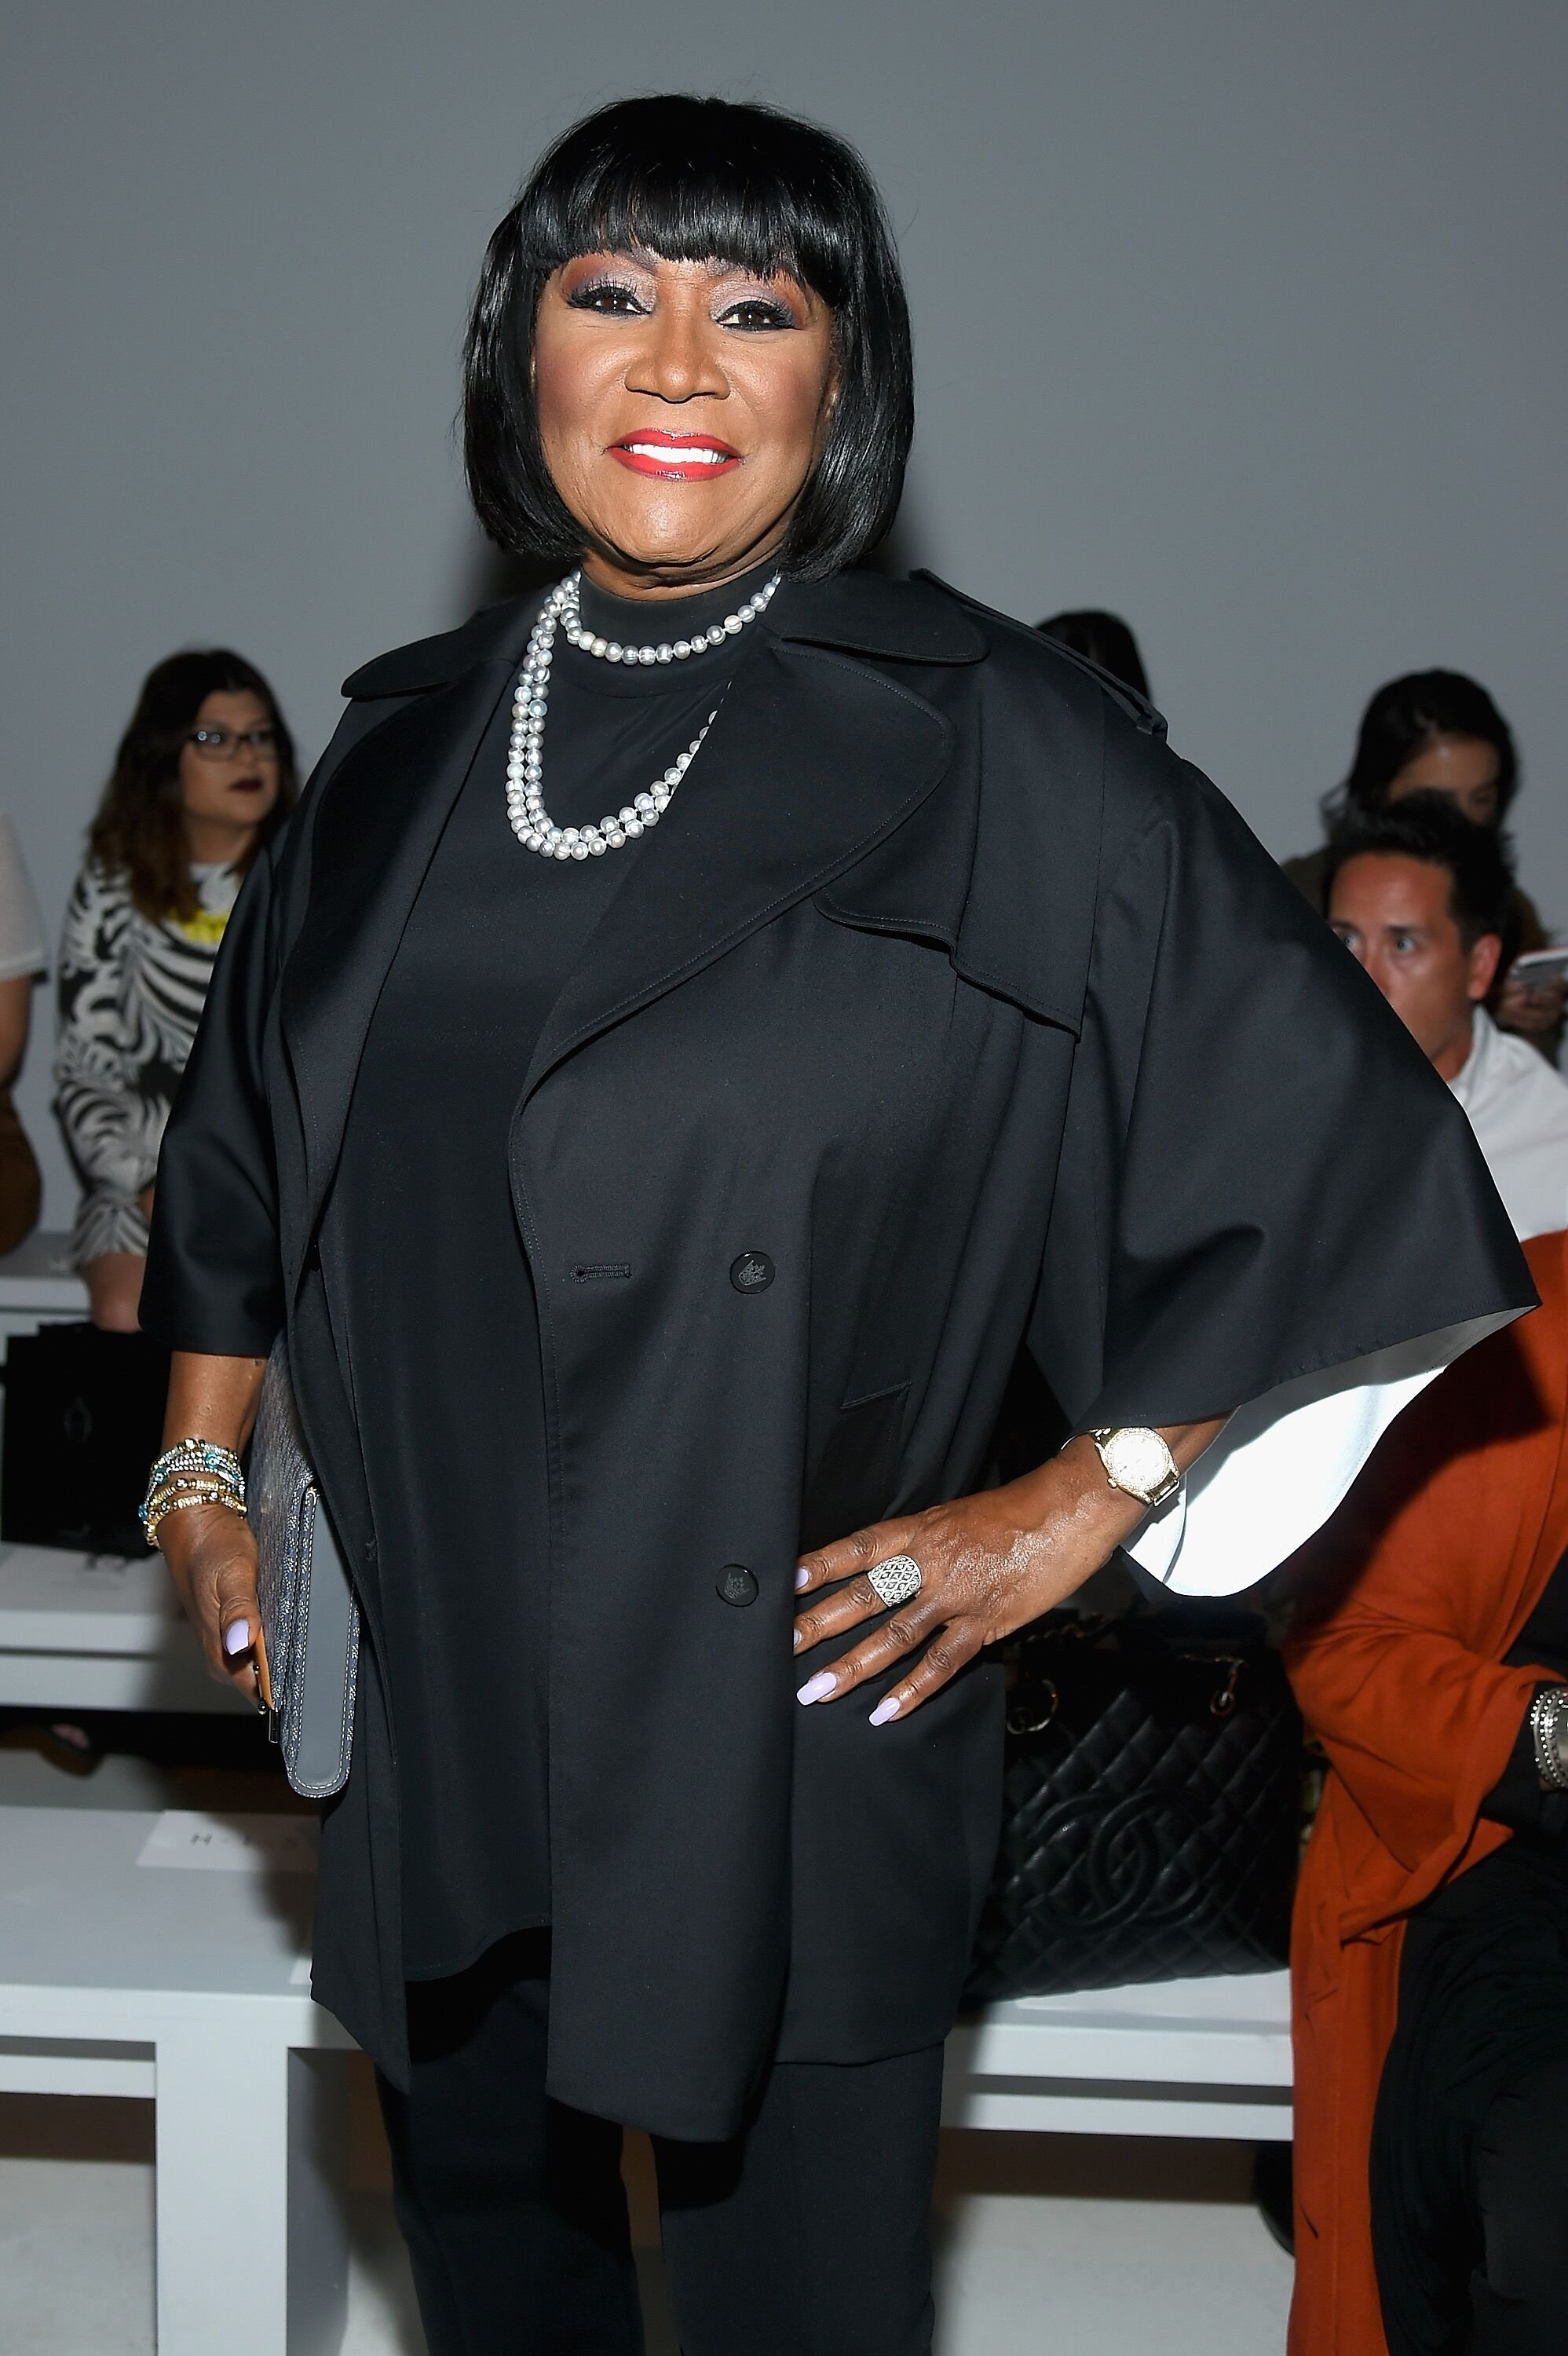 Patti LaBelle attends the Zang Toi fashion show during New York Fashion Week: The Shows at Gallery 3, Skylight Clarkson Sq on September 13, 2017 in New York City. | Source: Getty Images